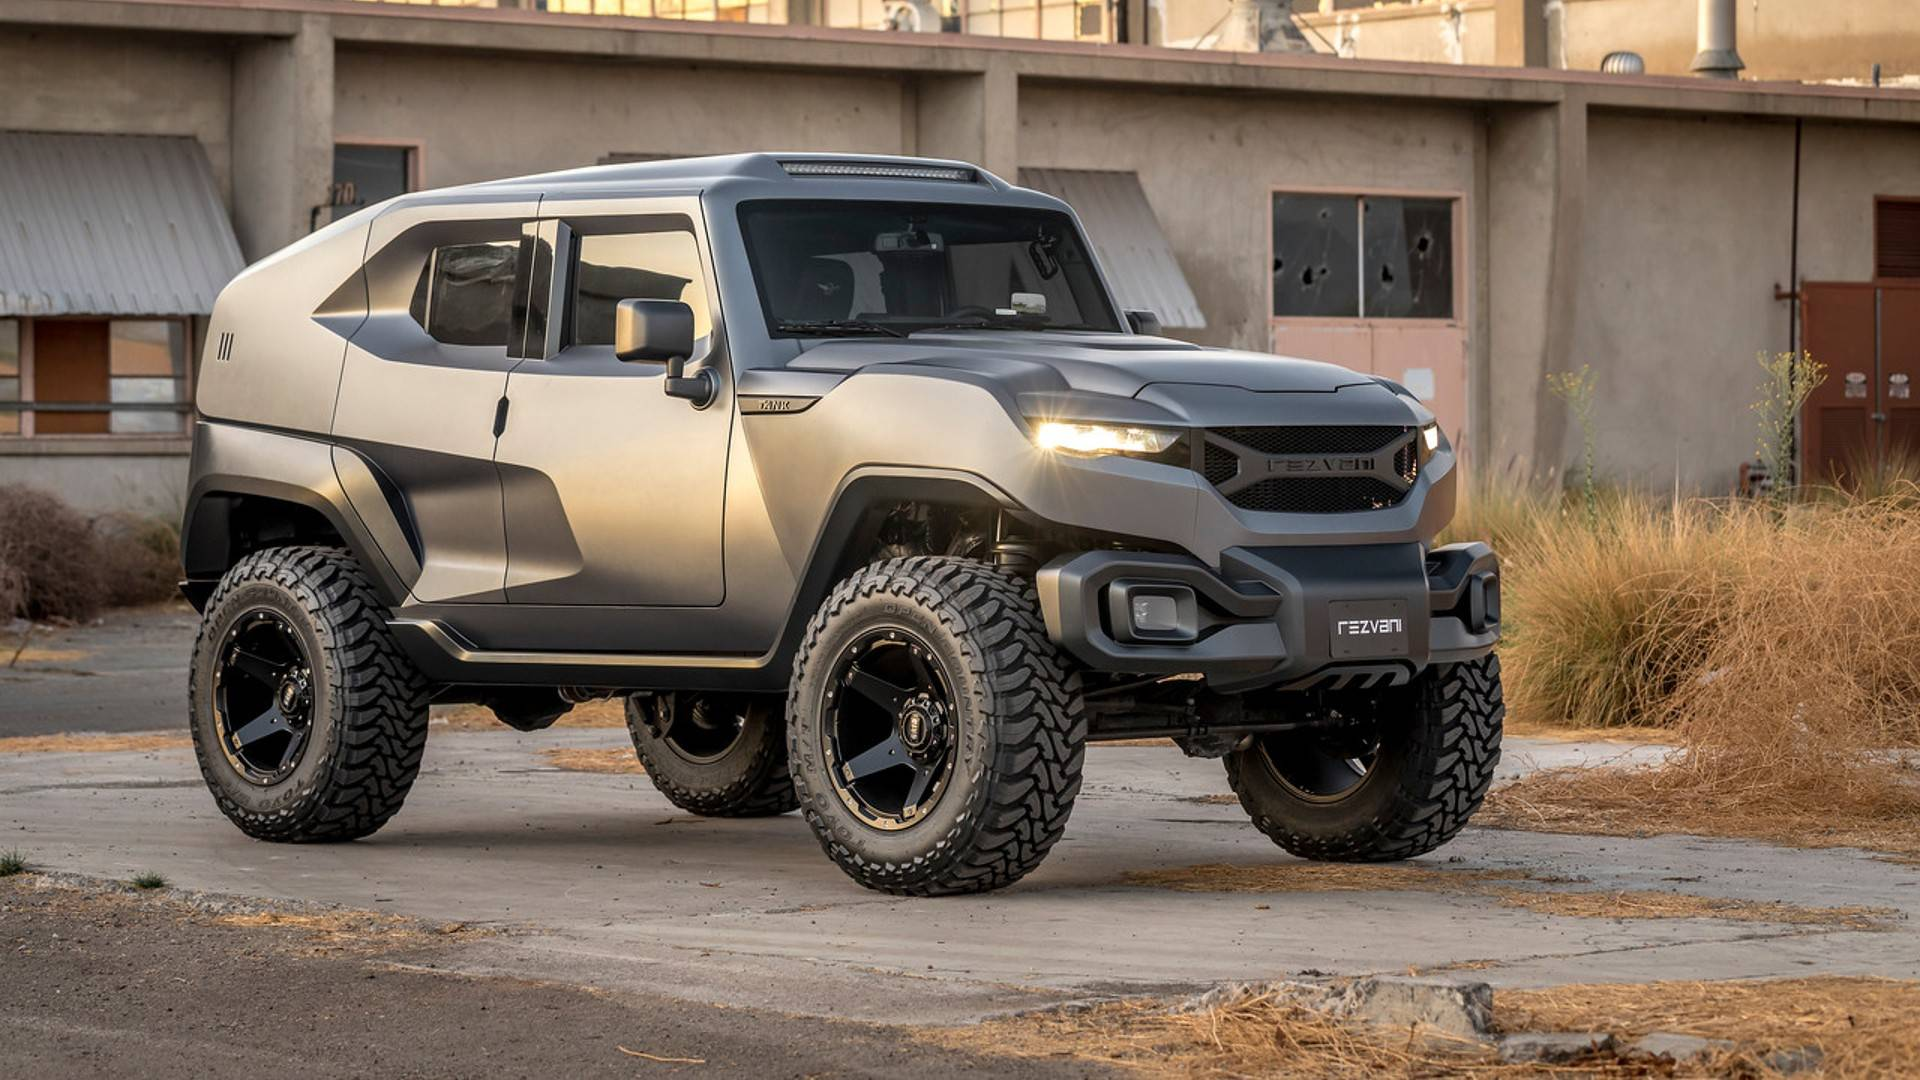 Most Expensive Rezvani Tank Costs 305 075